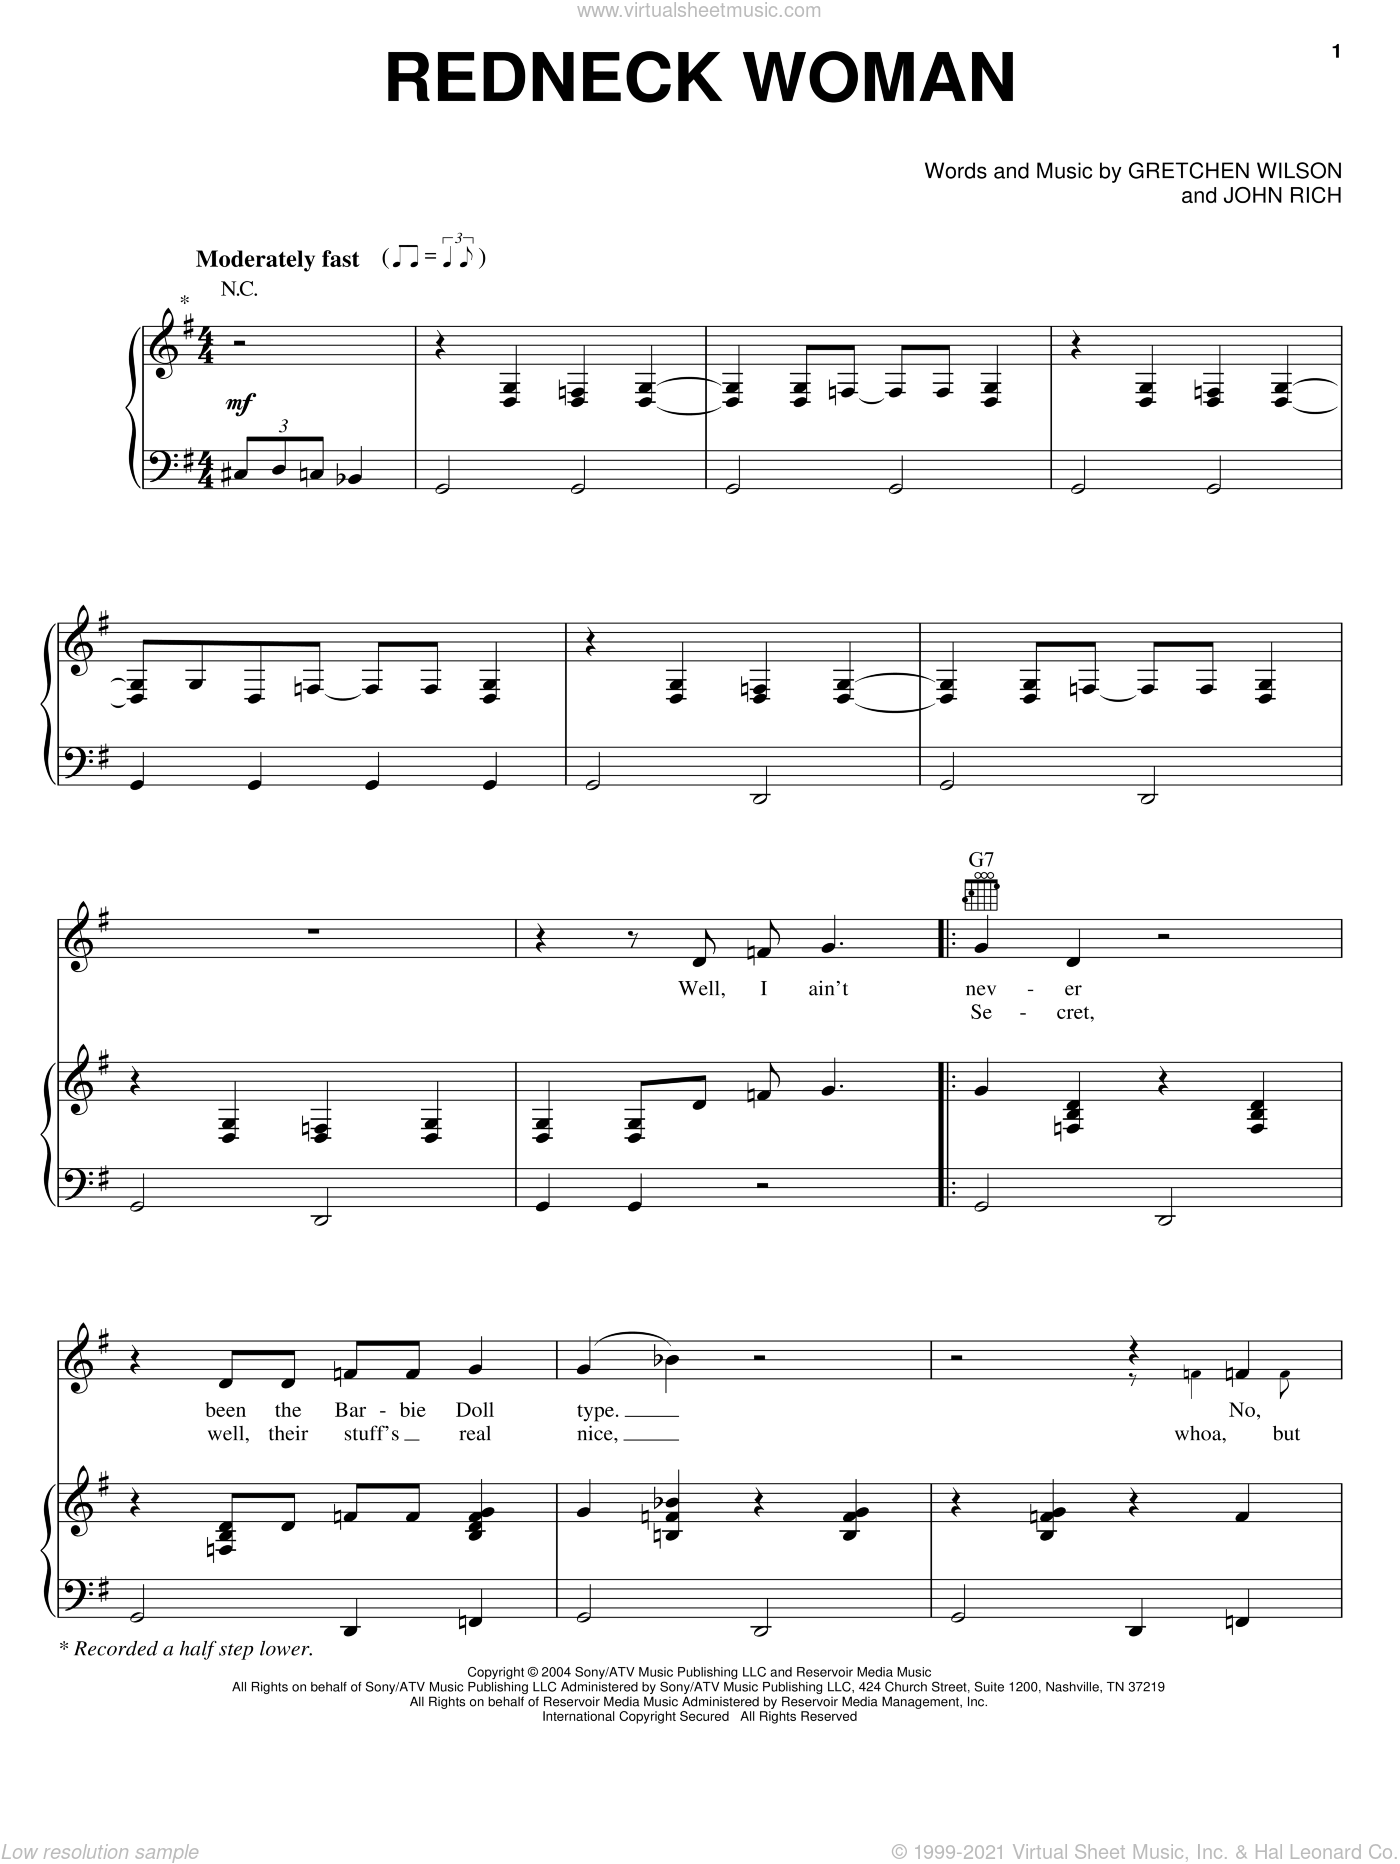 Redneck Woman sheet music for voice, piano or guitar by Gretchen Wilson and John Rich, intermediate skill level